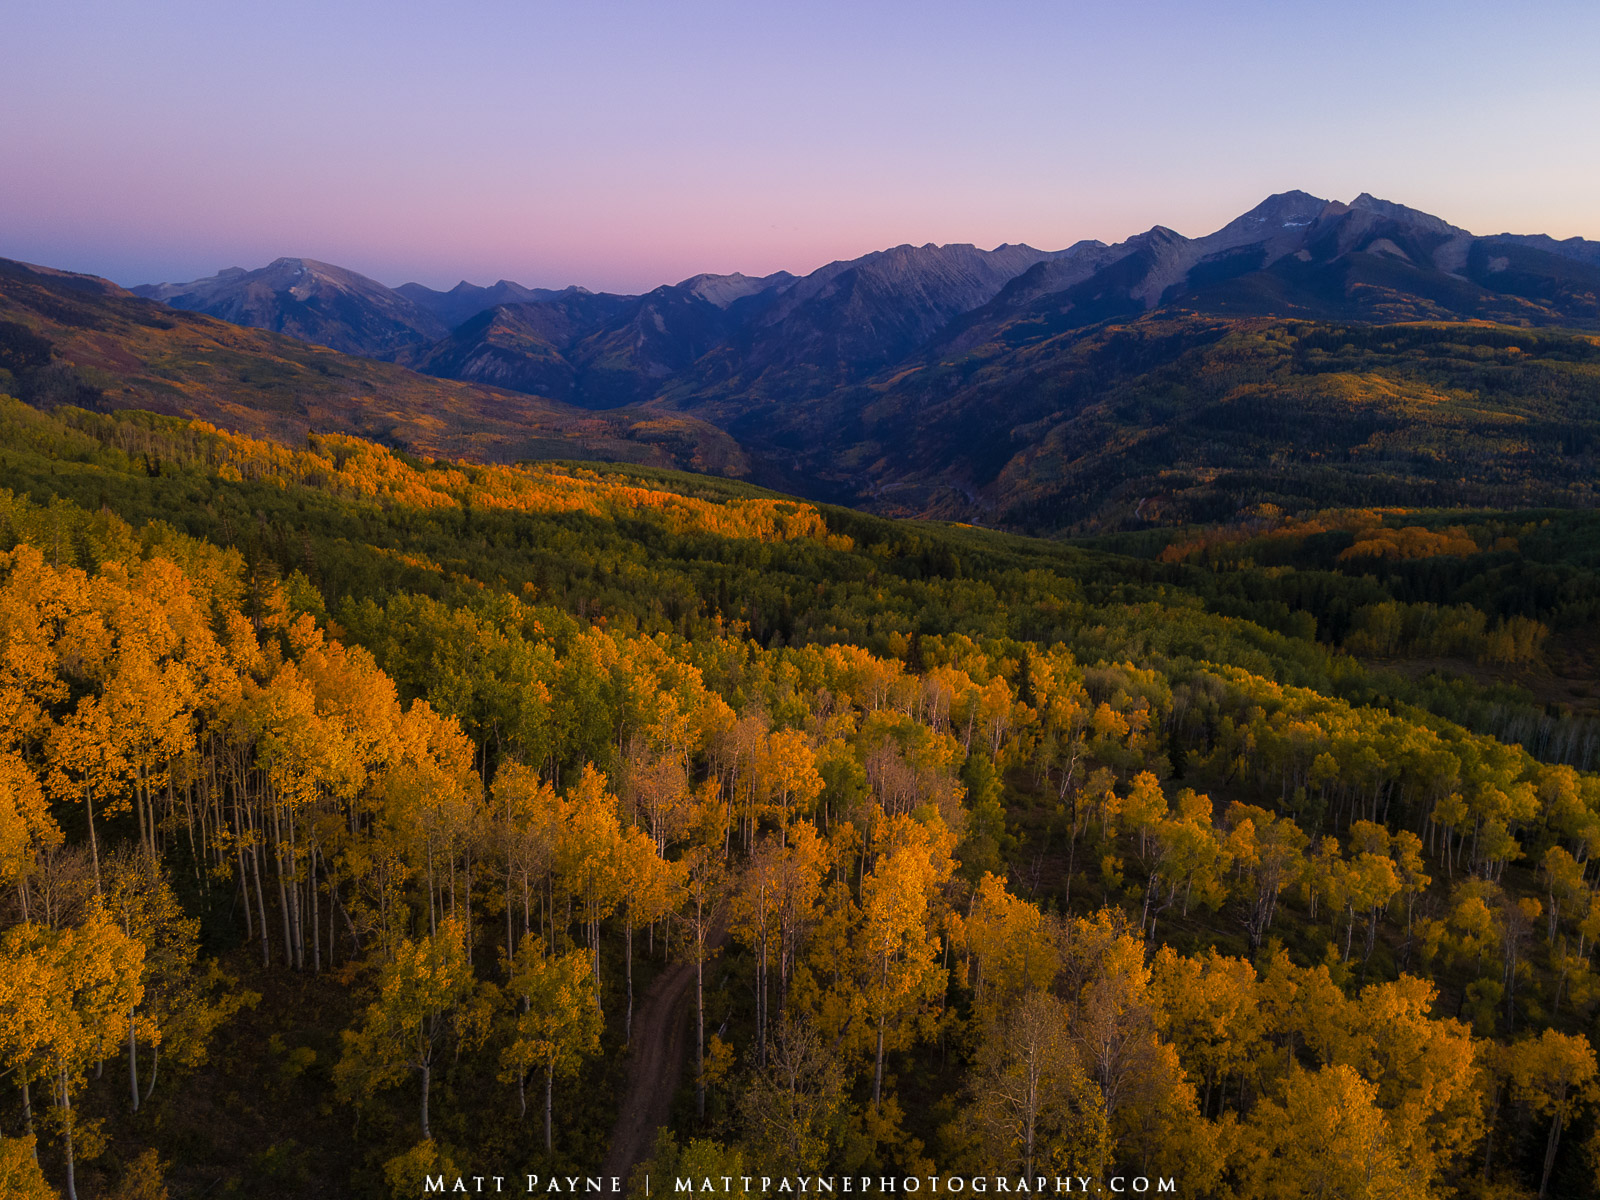 Aspen Trees, Autumn, Carbondale, Colorado, Evening, Fall, Fall Colors, Glow, Landscape, aspen leaves, colorful, photo